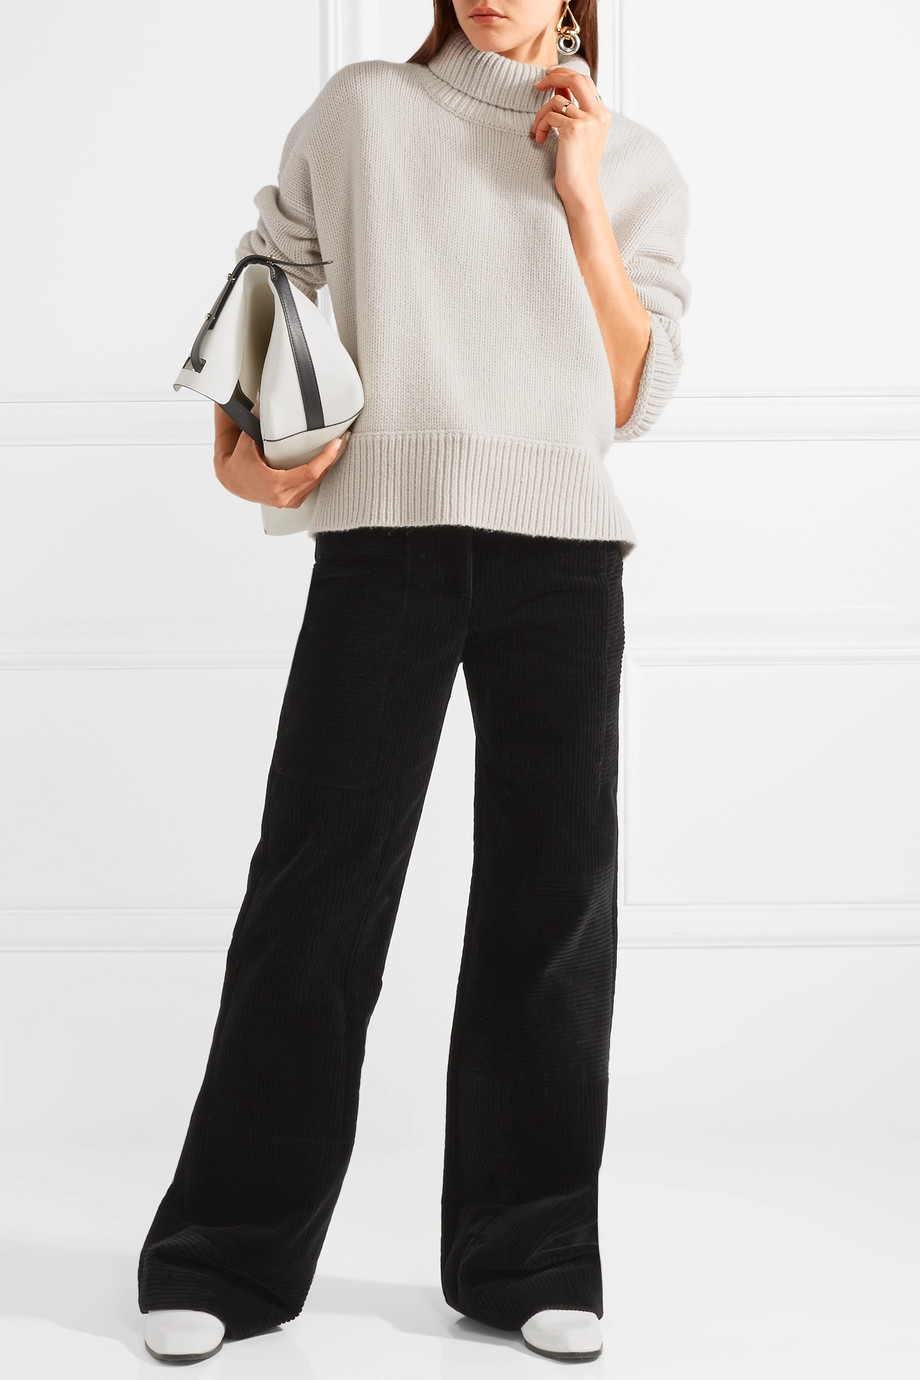 turtleneck sweater + wide-leg pants  Image  via